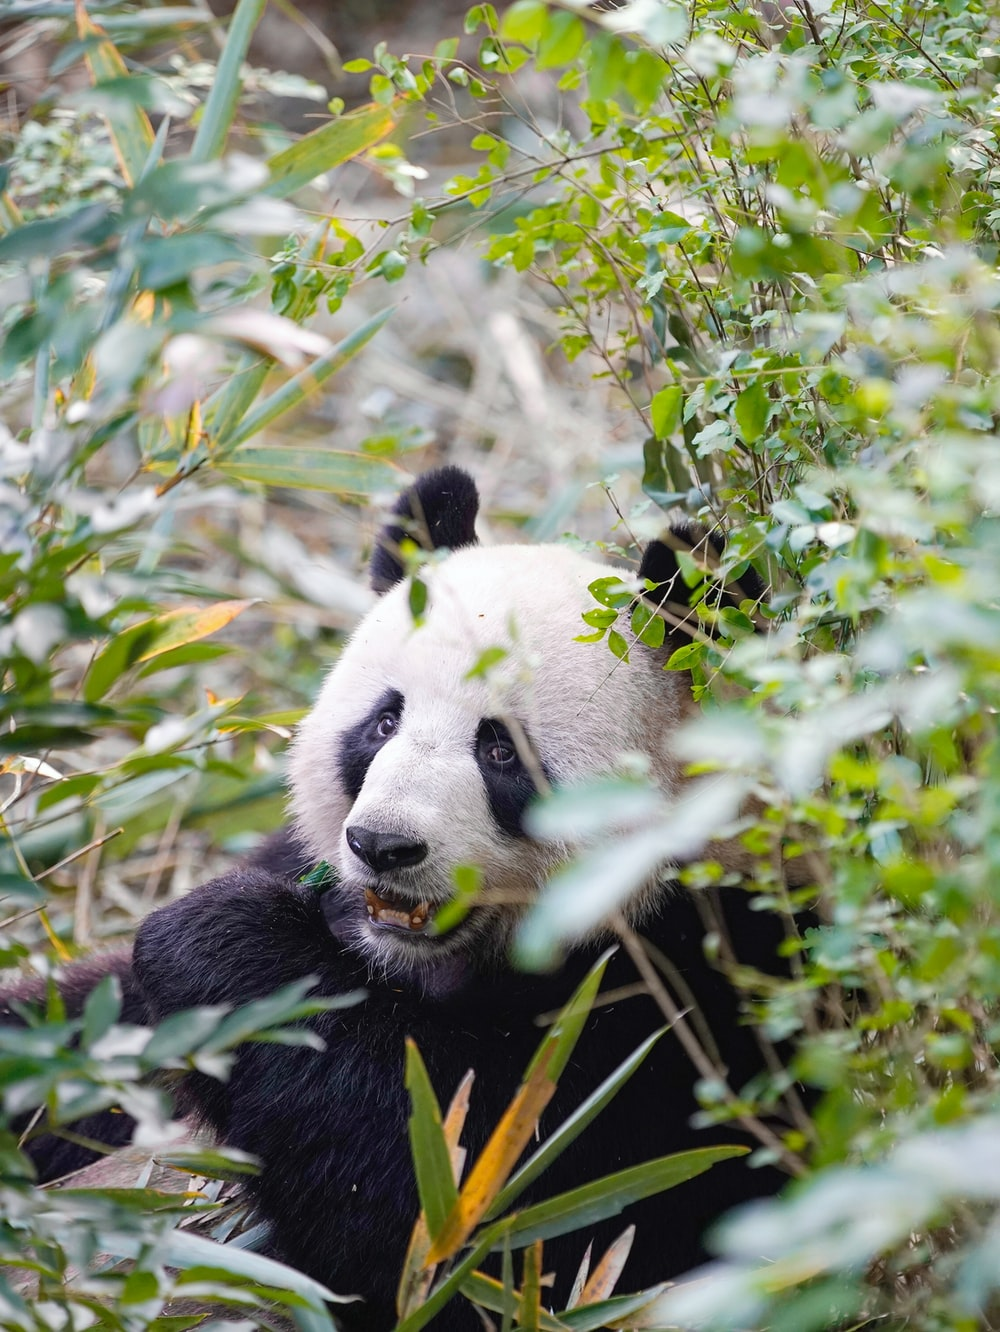 green plant across panda photo